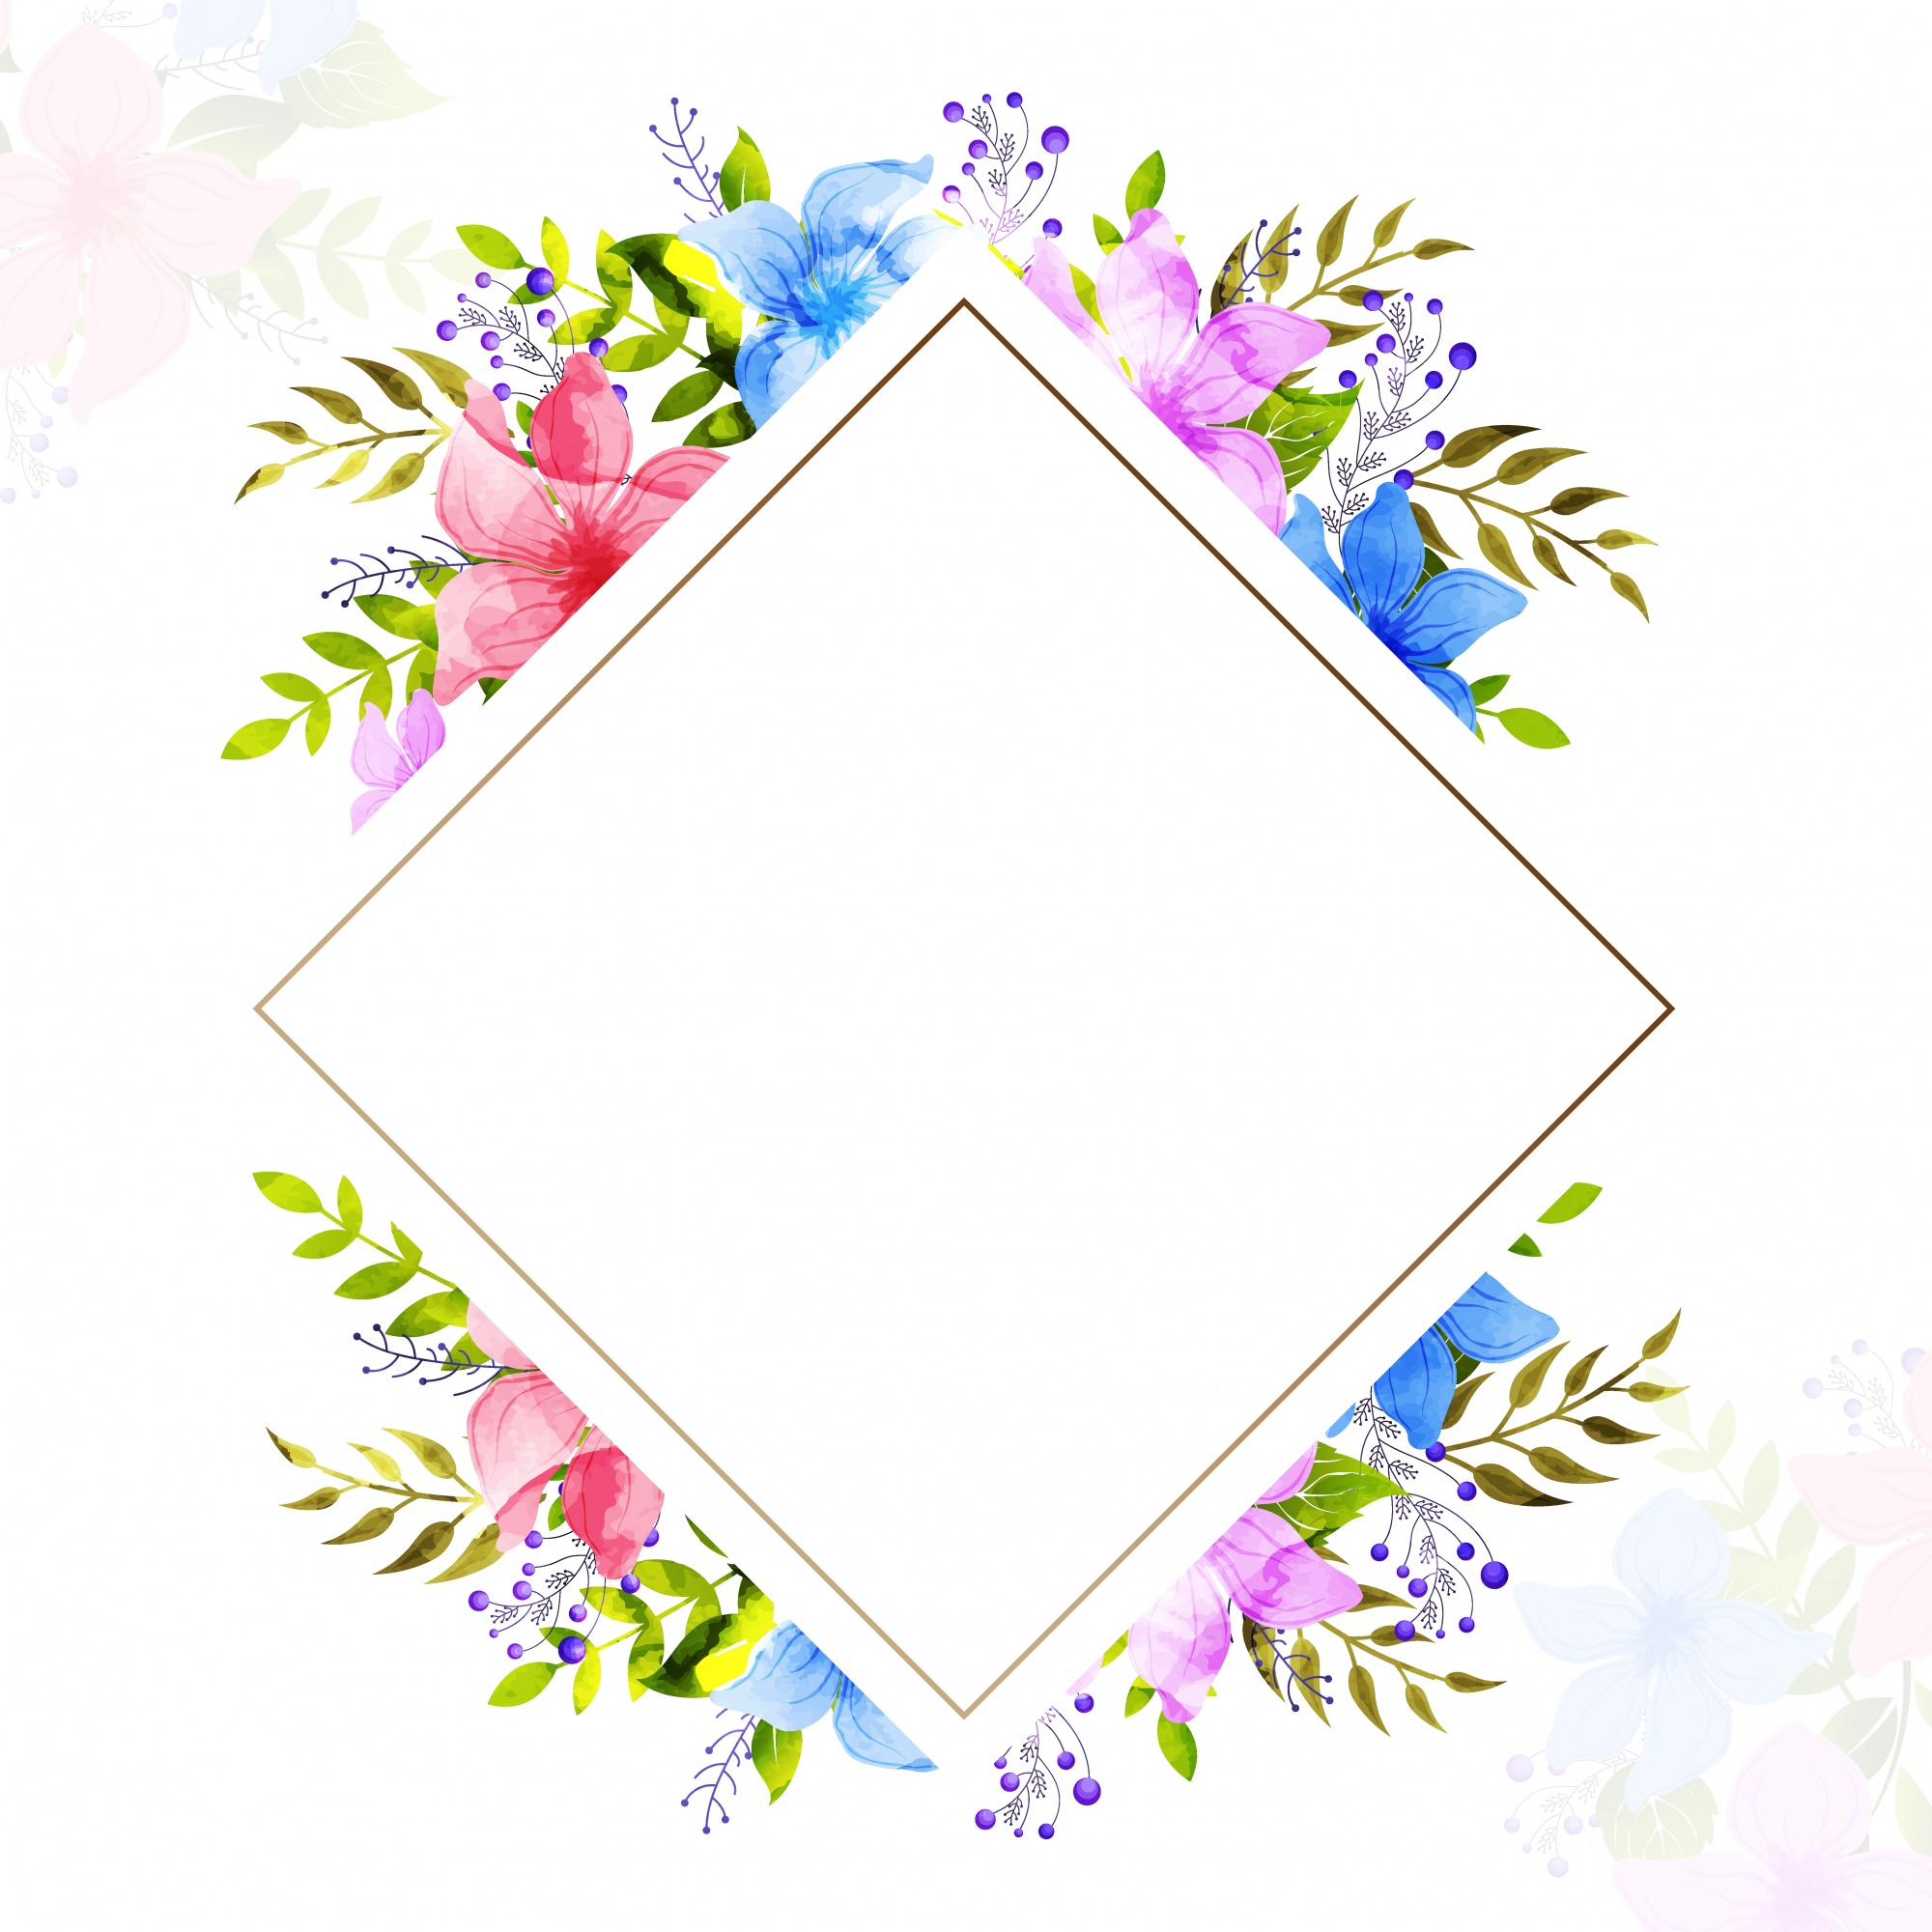 Greeting or Invitation Card with watercolor flowers.